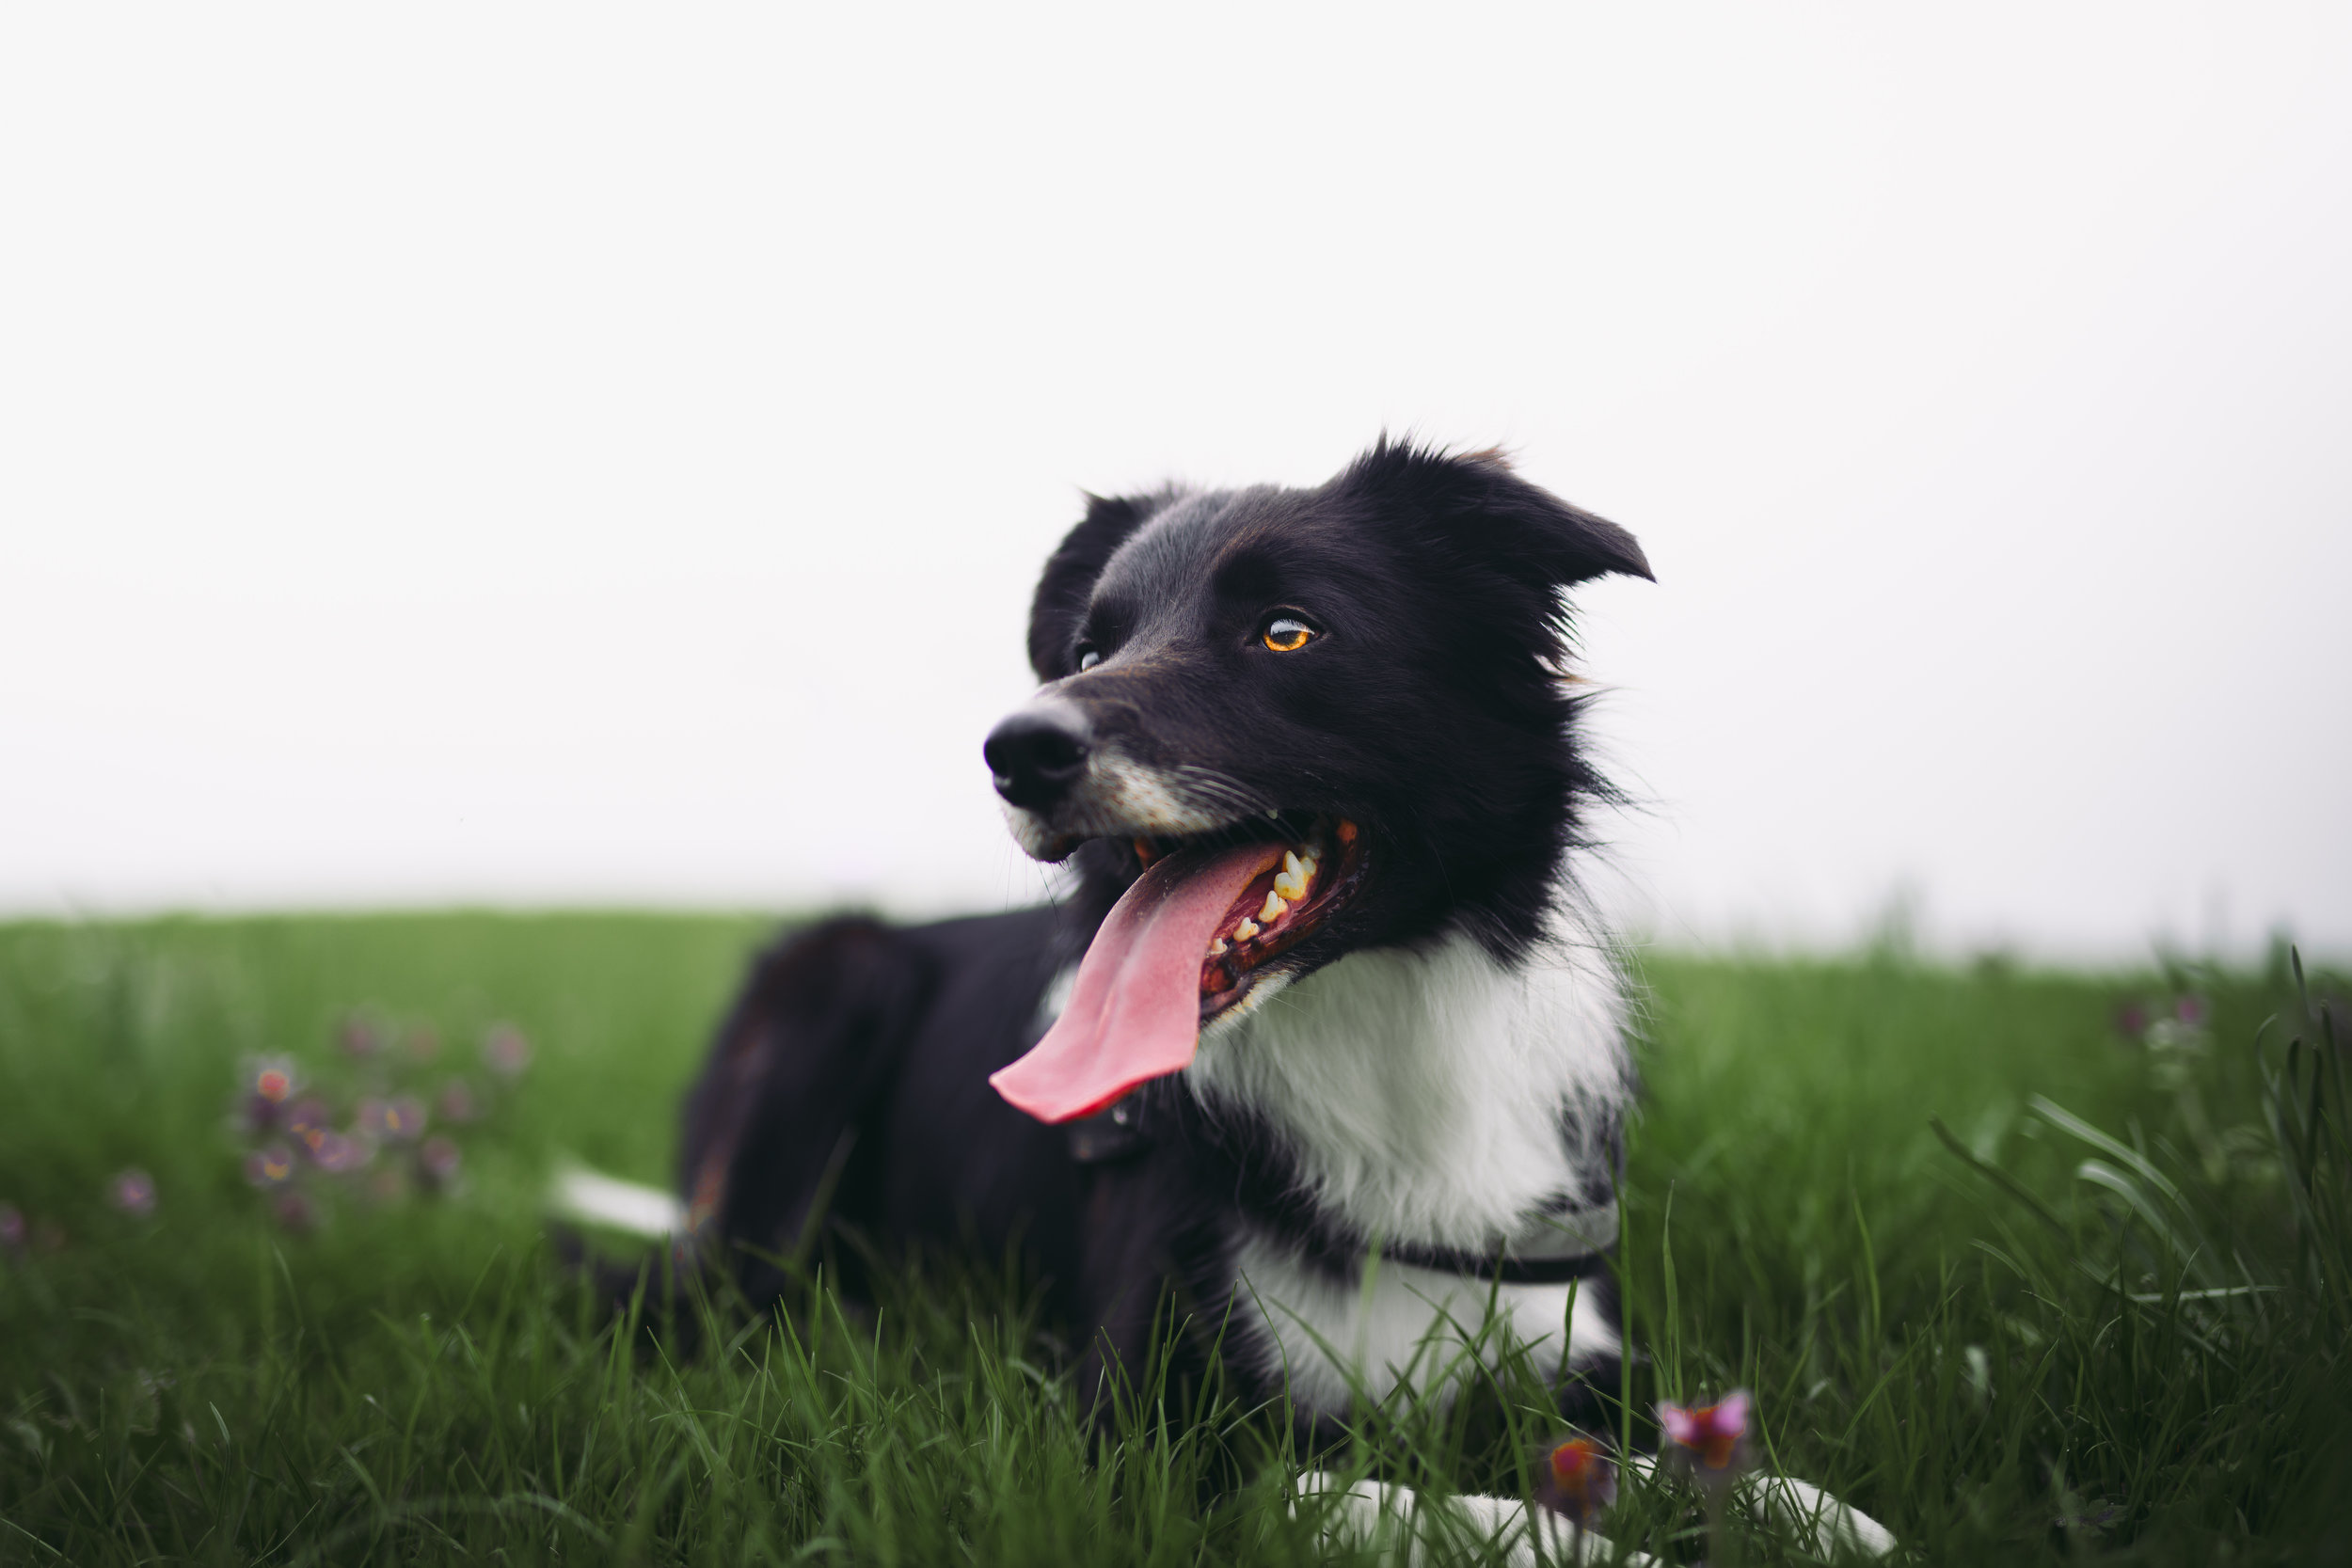 Border collie dog in grass